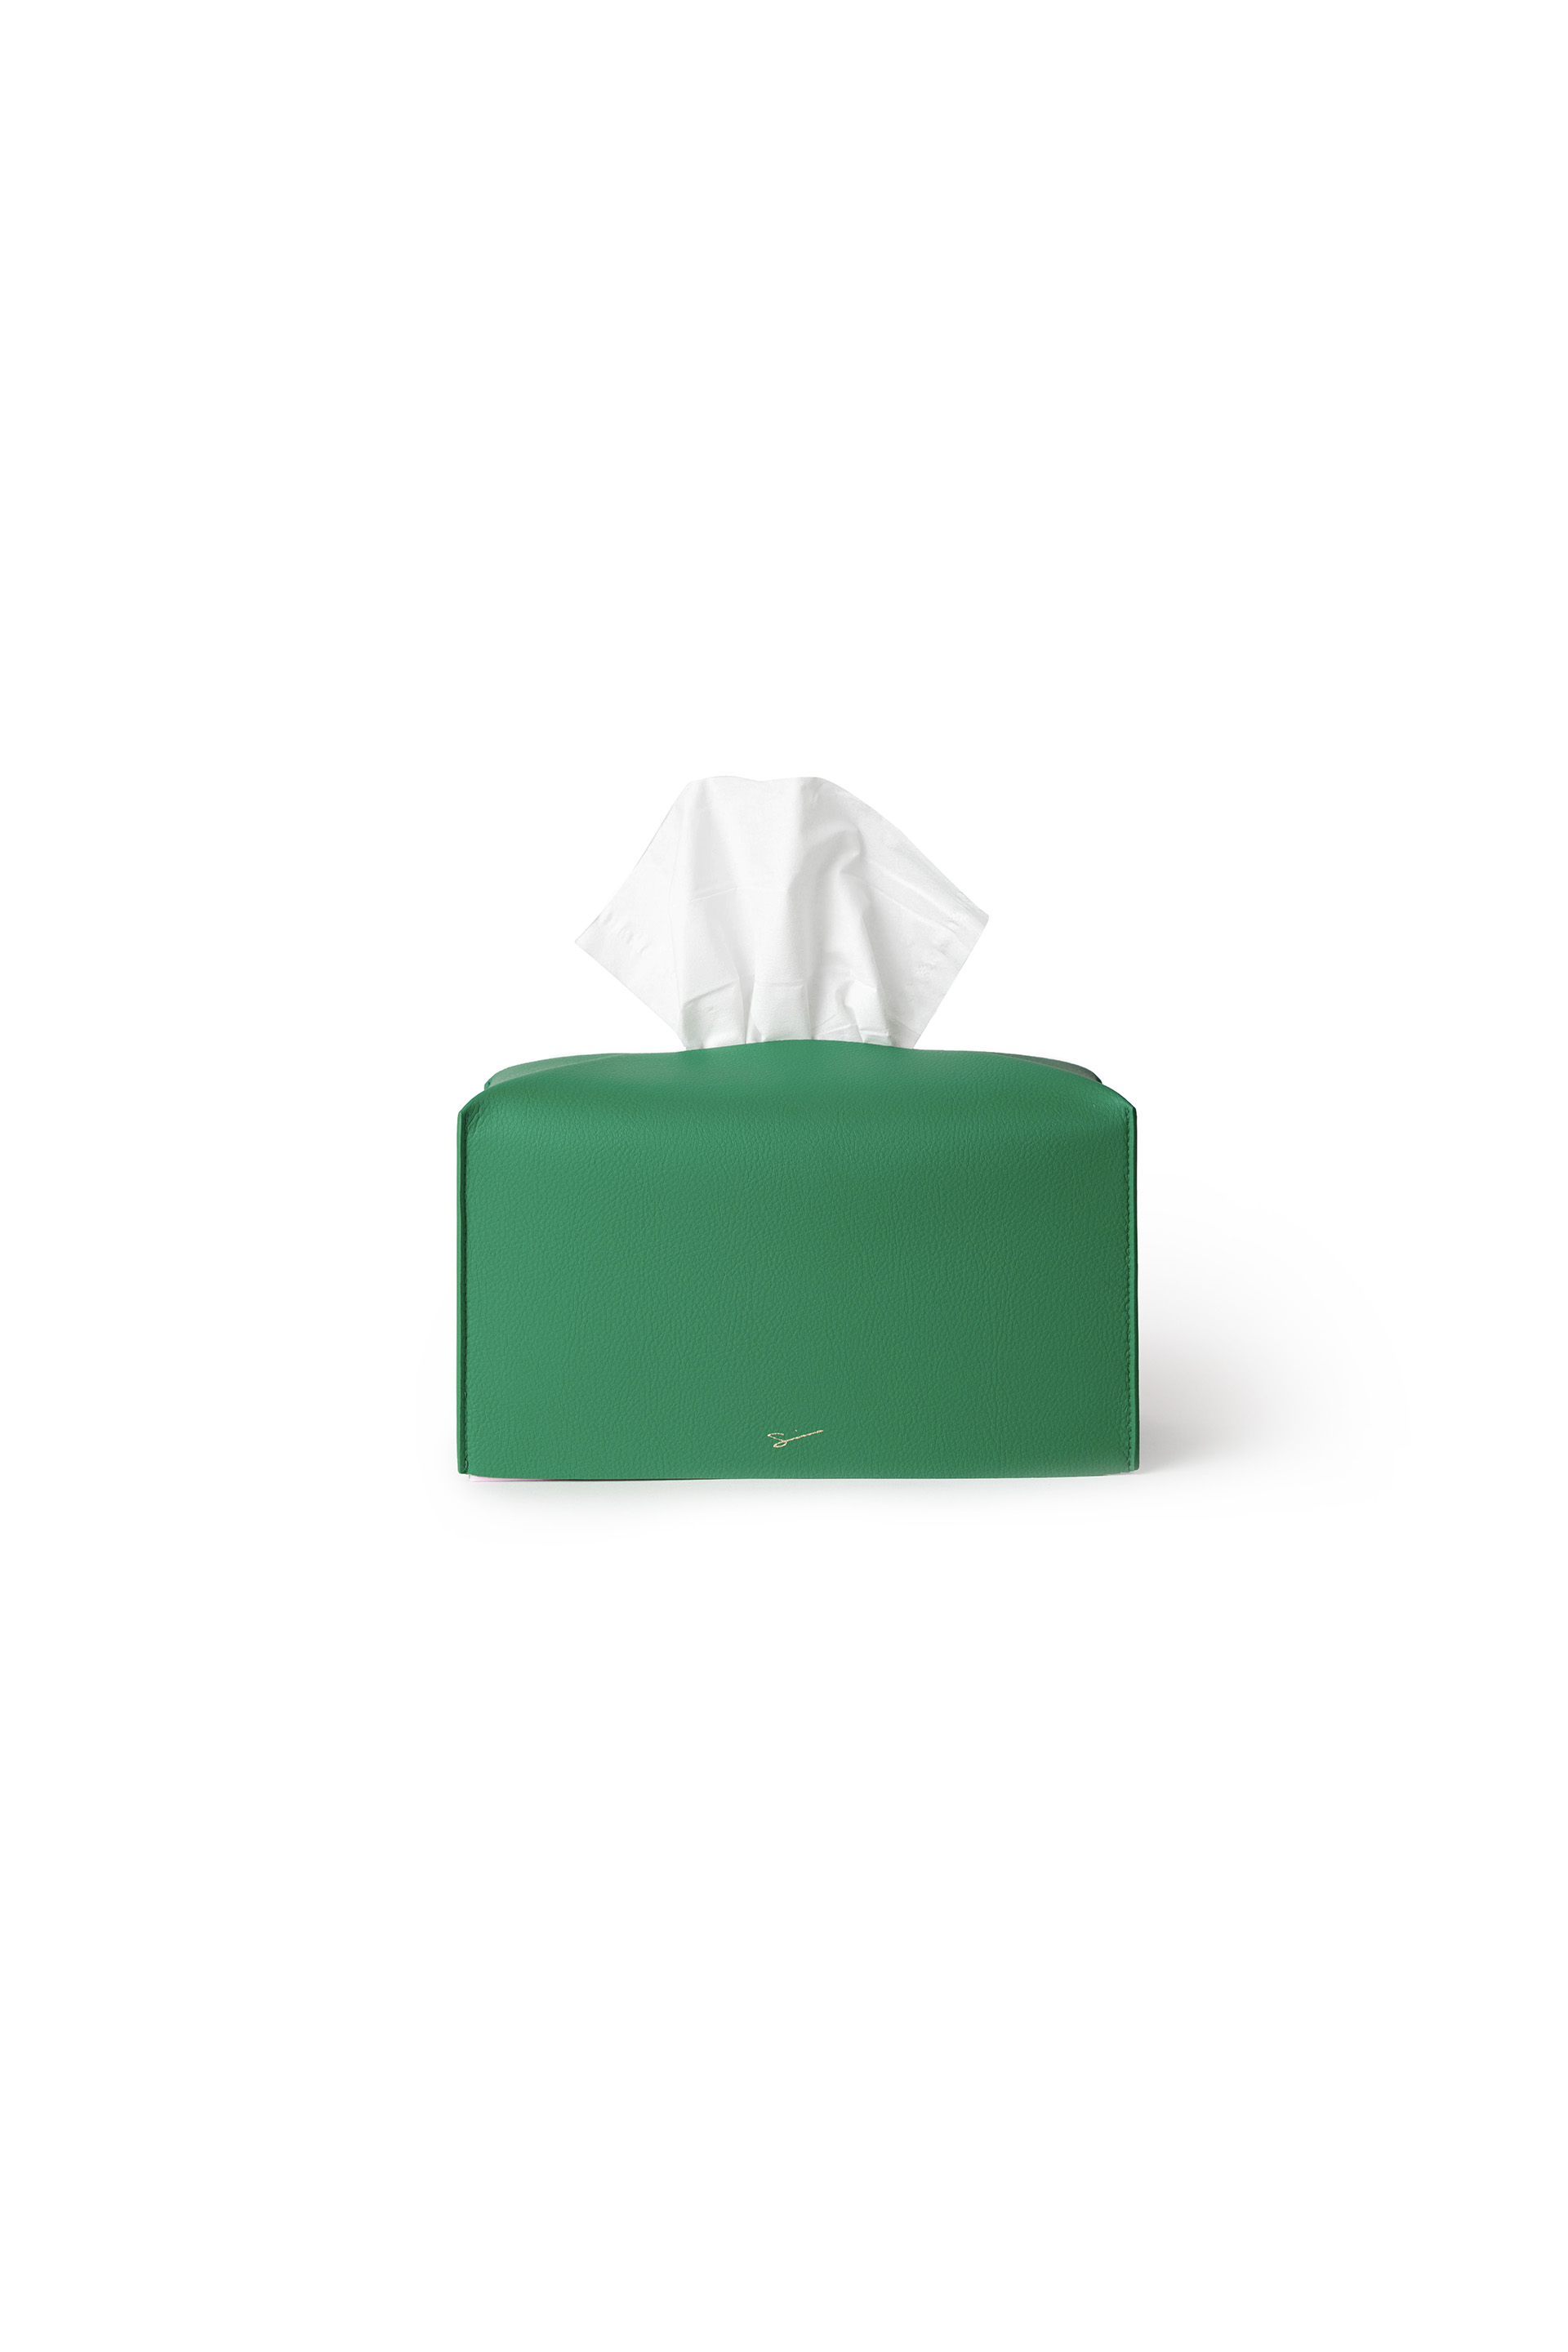 TISSUE CASE L 11 Tamani Green